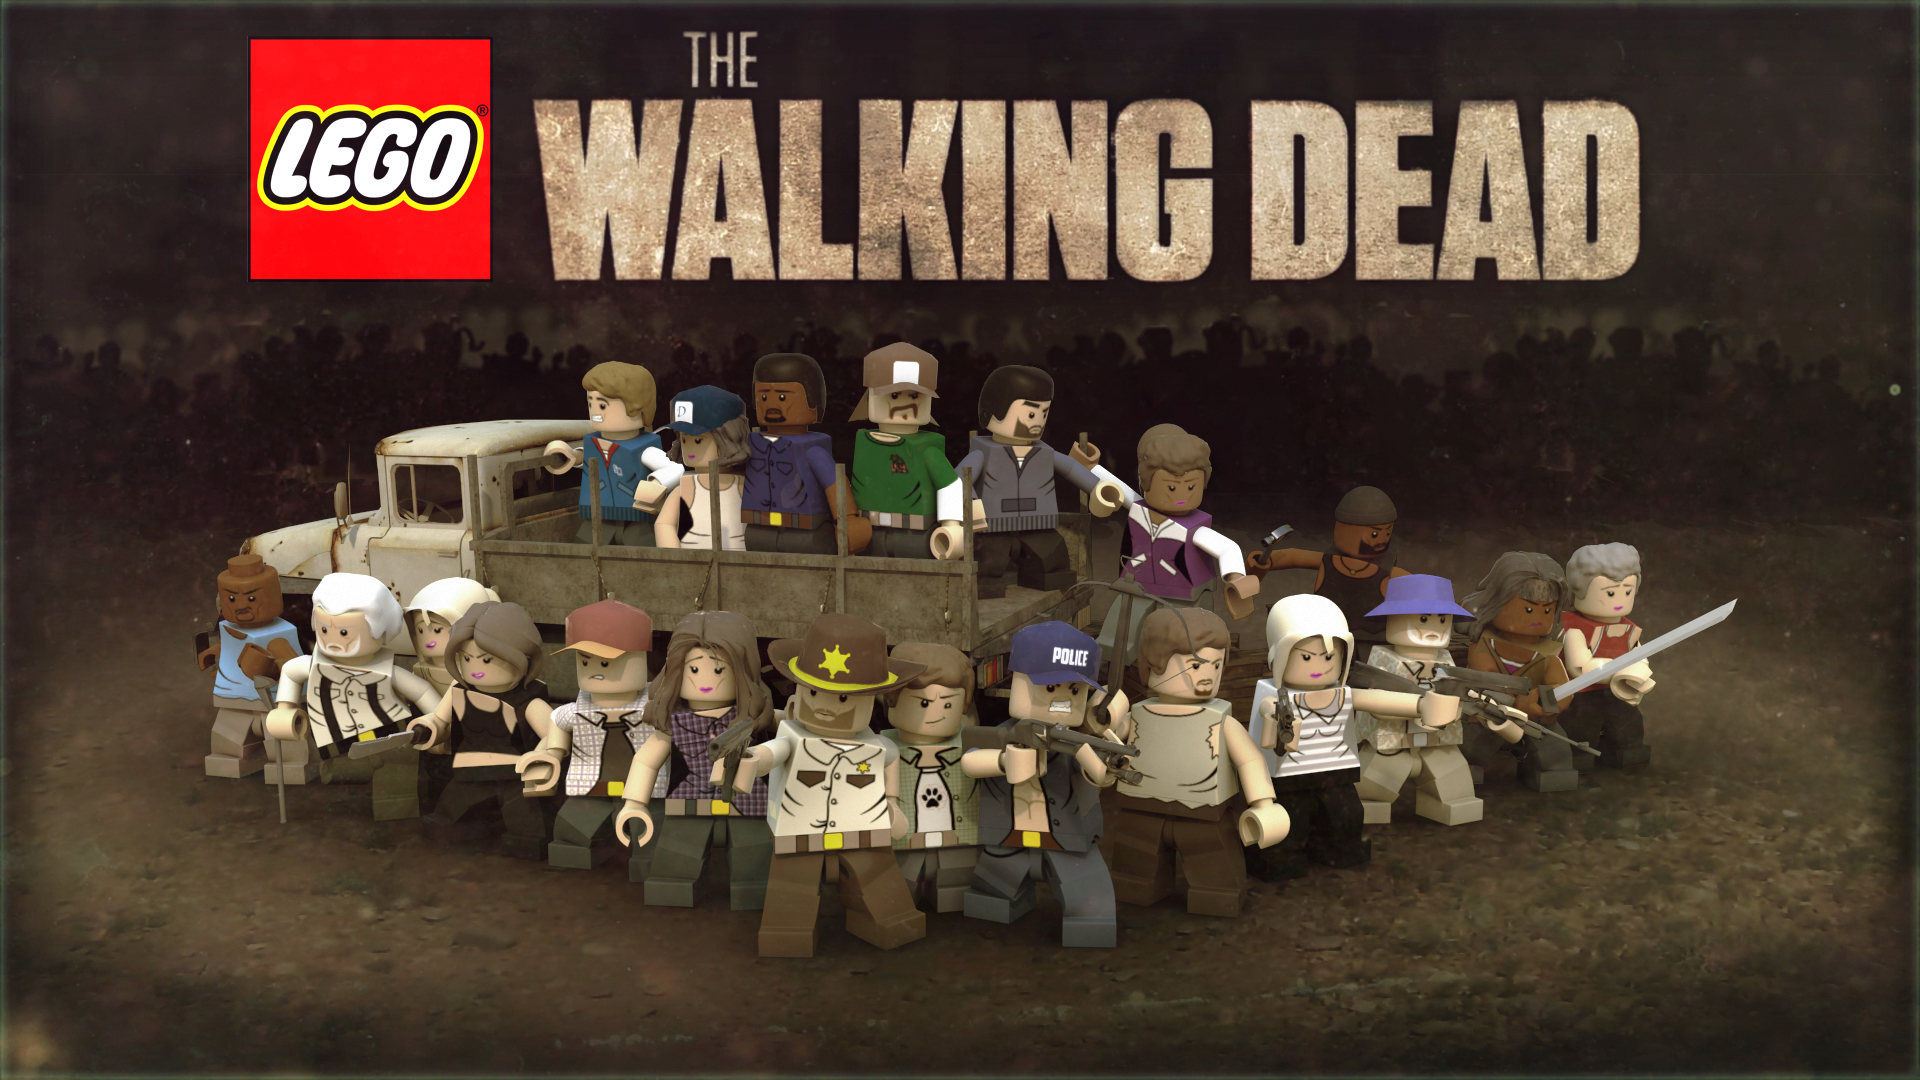 Walking dead lego daryl the walking - Lego The Walking Dead The Videogame Custom Lego Wiki Fandom Powered By Wikia